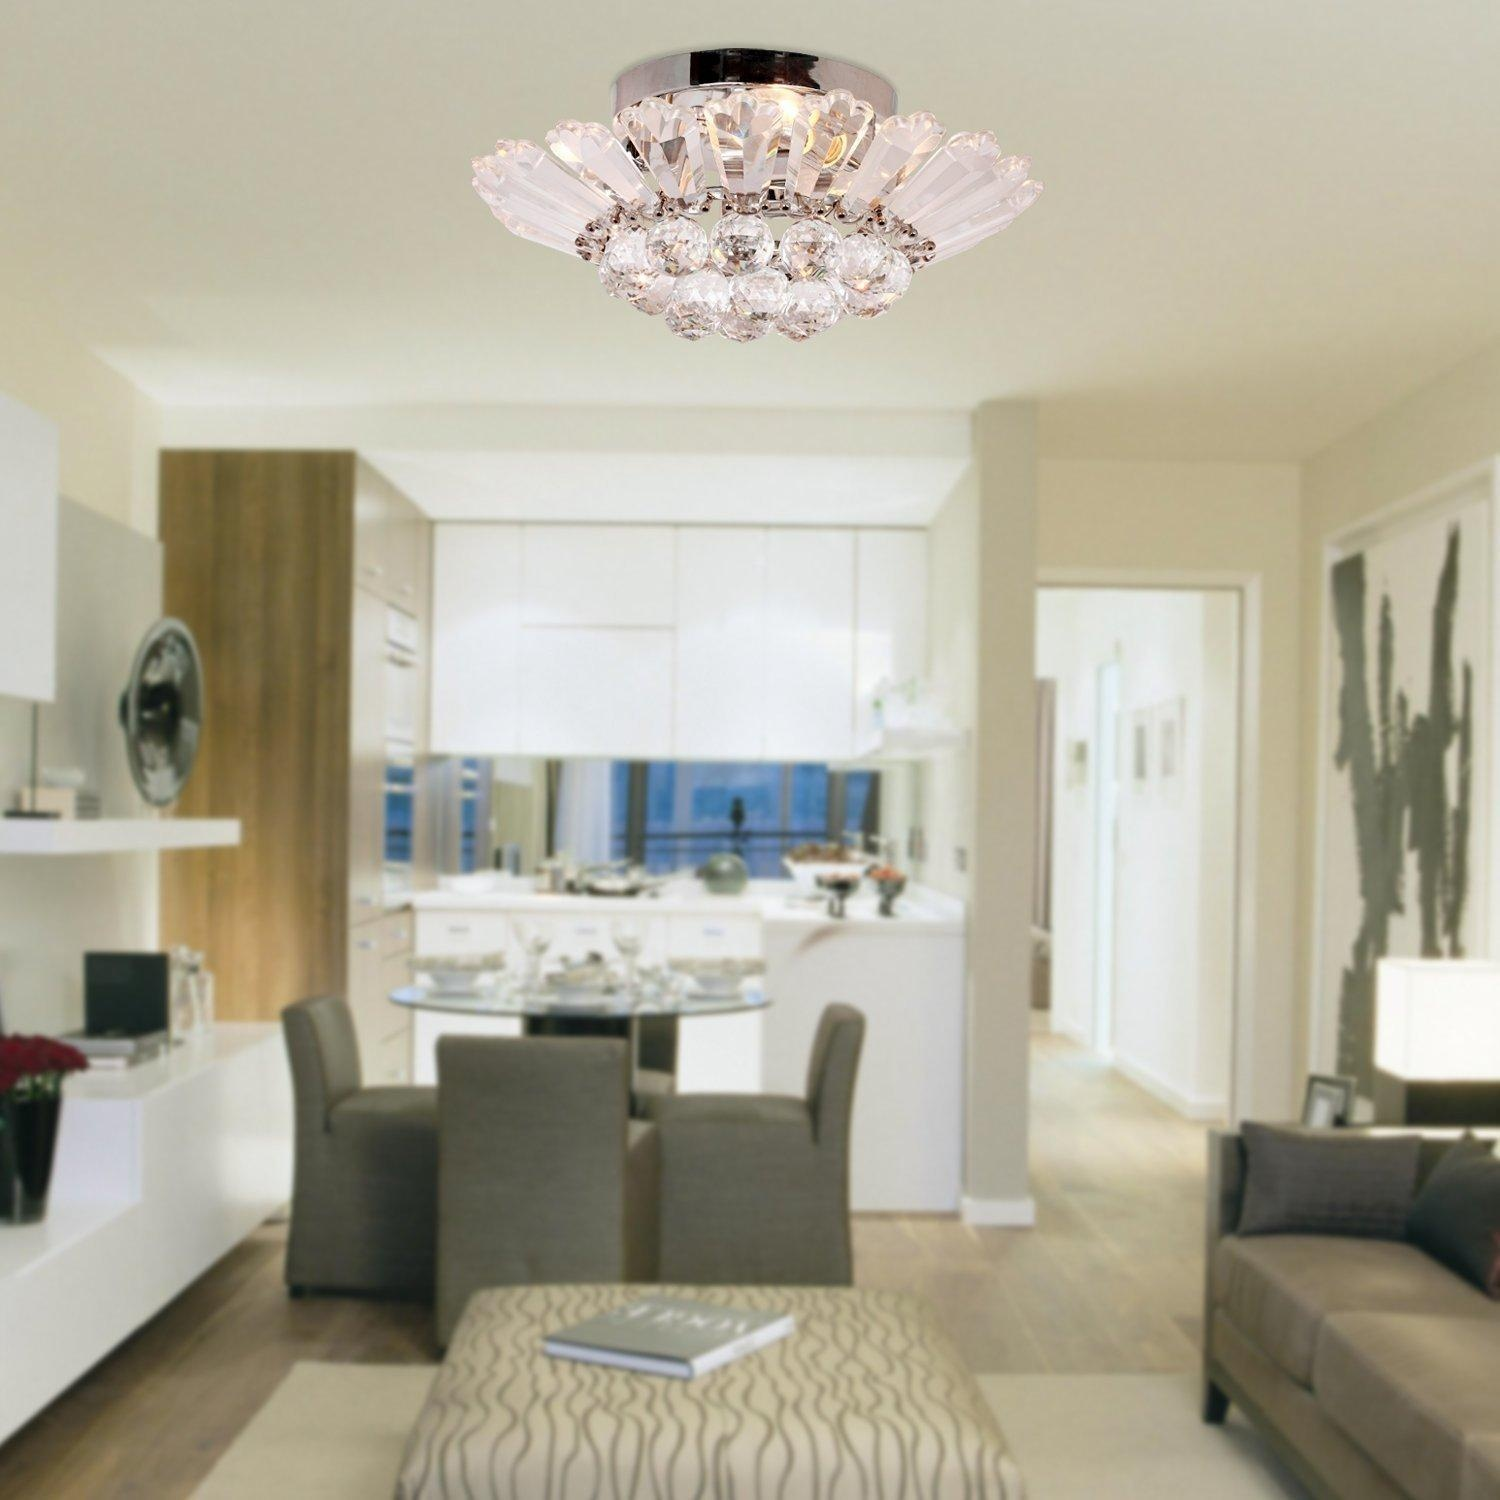 Online Store Comeonlight Modern Semi Flush Mount In Crystal Feature Home Ceiling Light